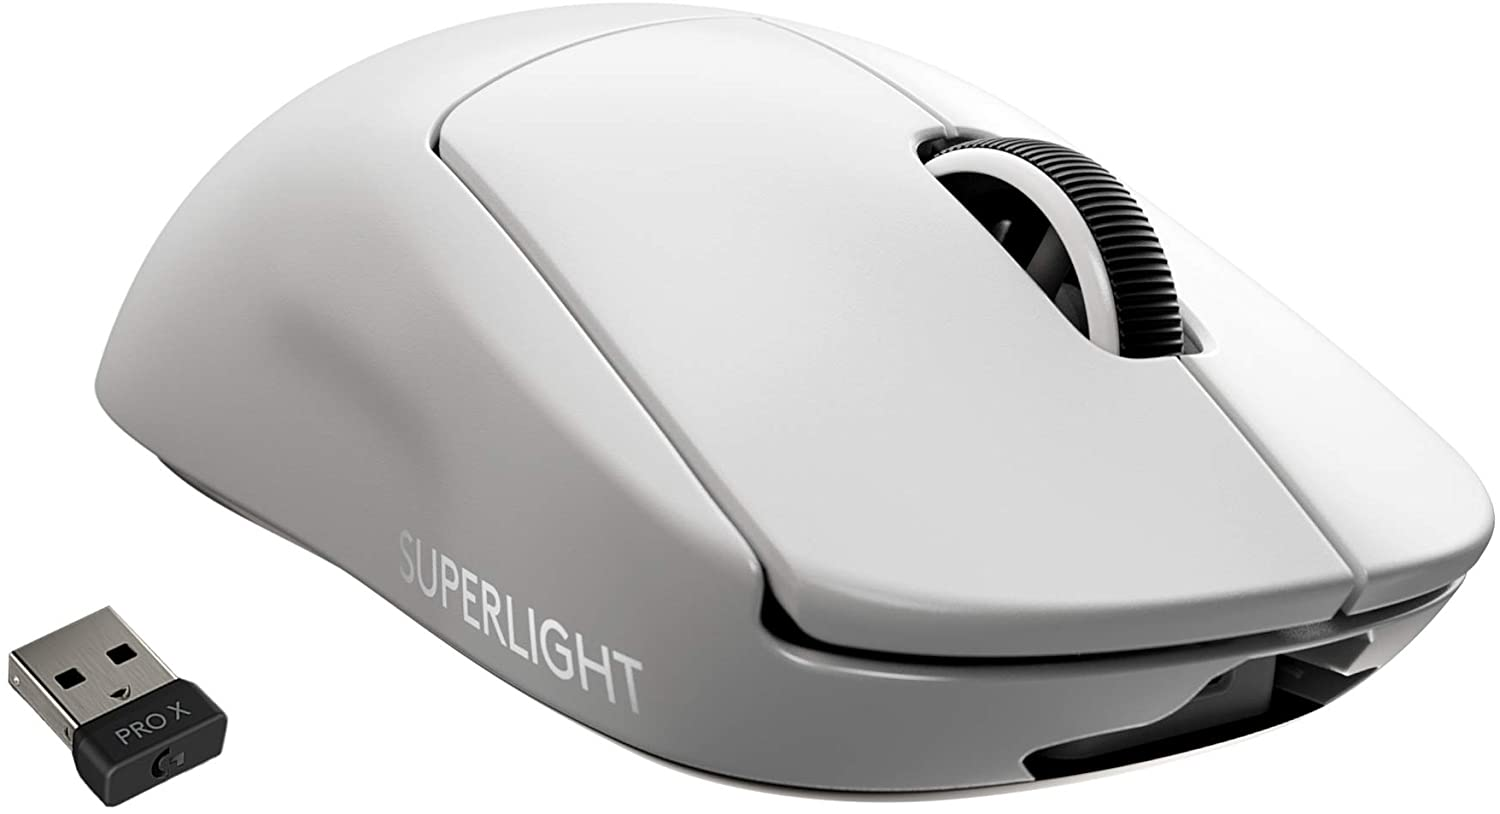 Logitech G PRO X Superlight Wireless White